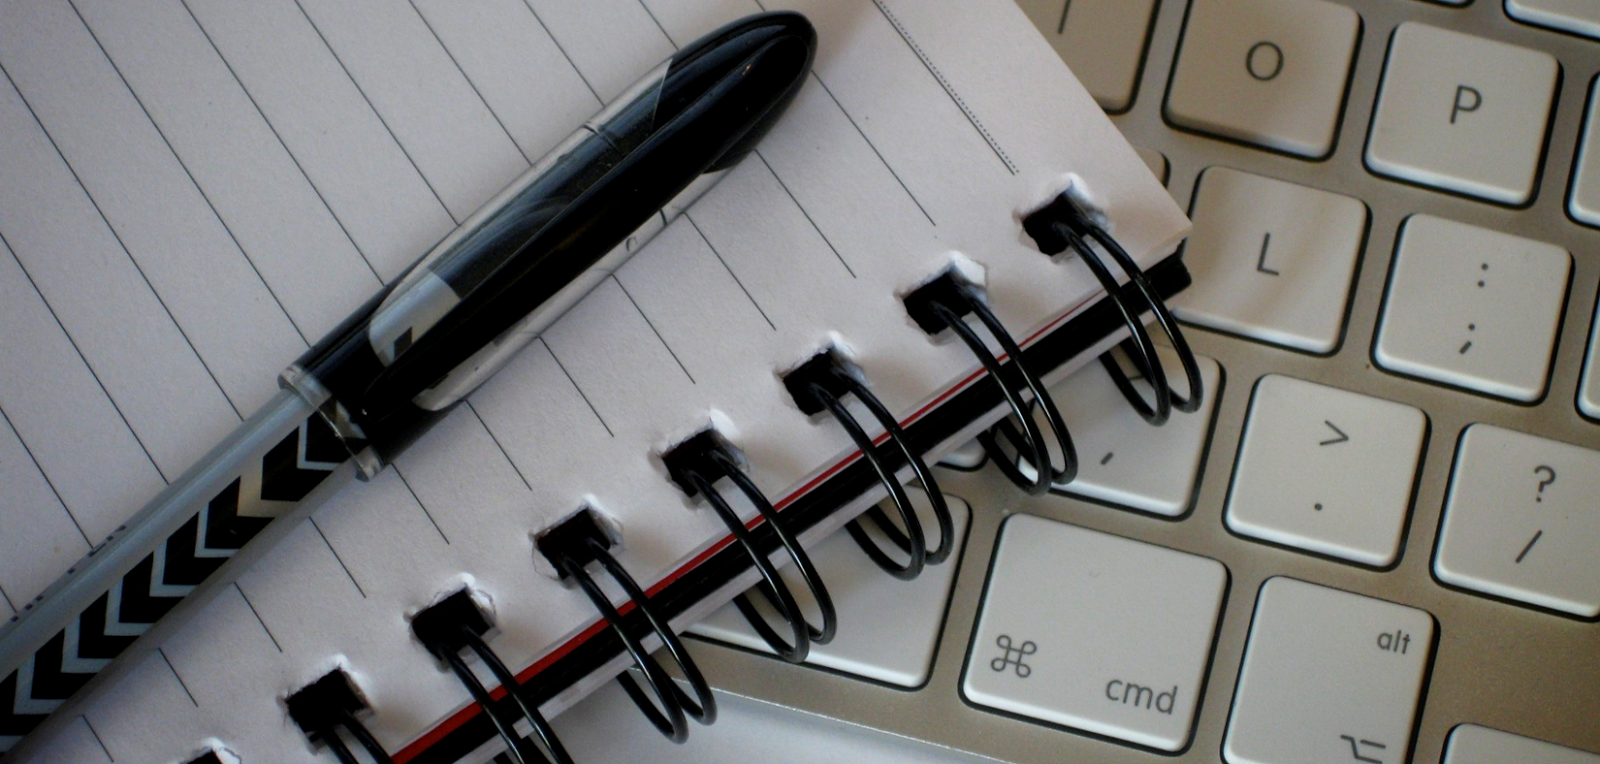 Image Credit: Writing Tools by Pete O'Shea, from Flickr <https://www.flickr.com/photos/peteoshea/5600161625>